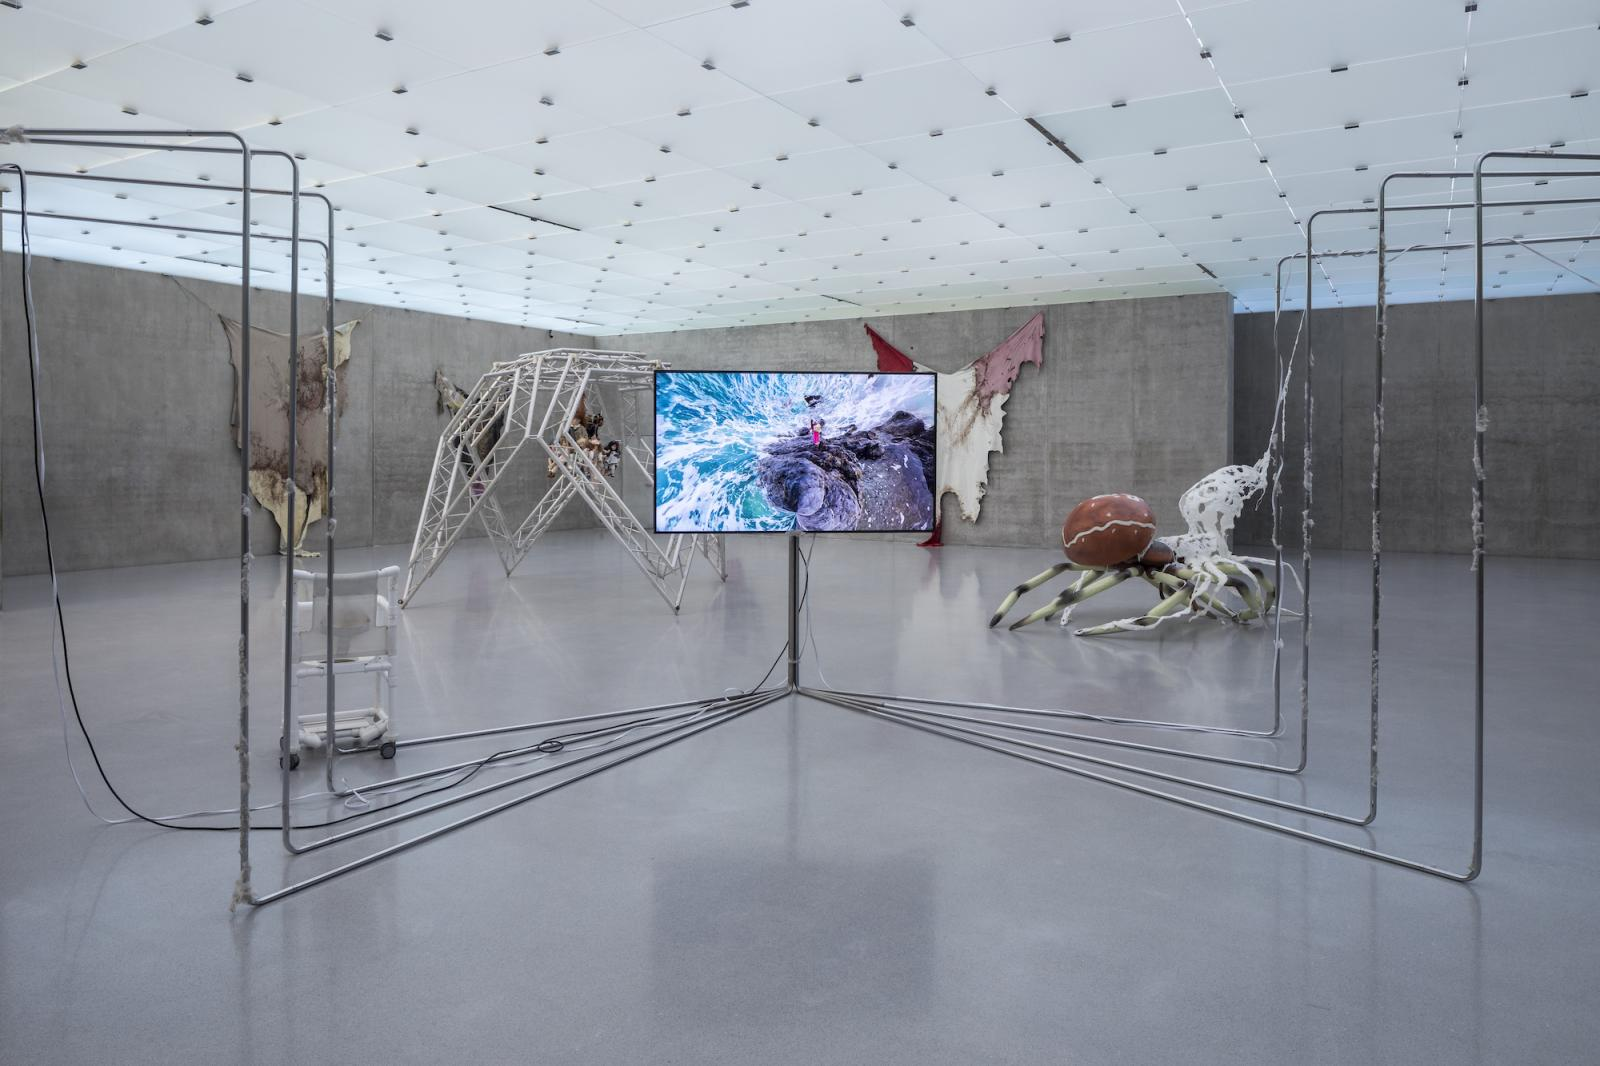 Installation view first floor, Kunsthaus Bregenz, 2019 Photo: Markus Tretter, Courtesy of the artist, © Raphaela Vogel, Kunsthaus  Bregenz